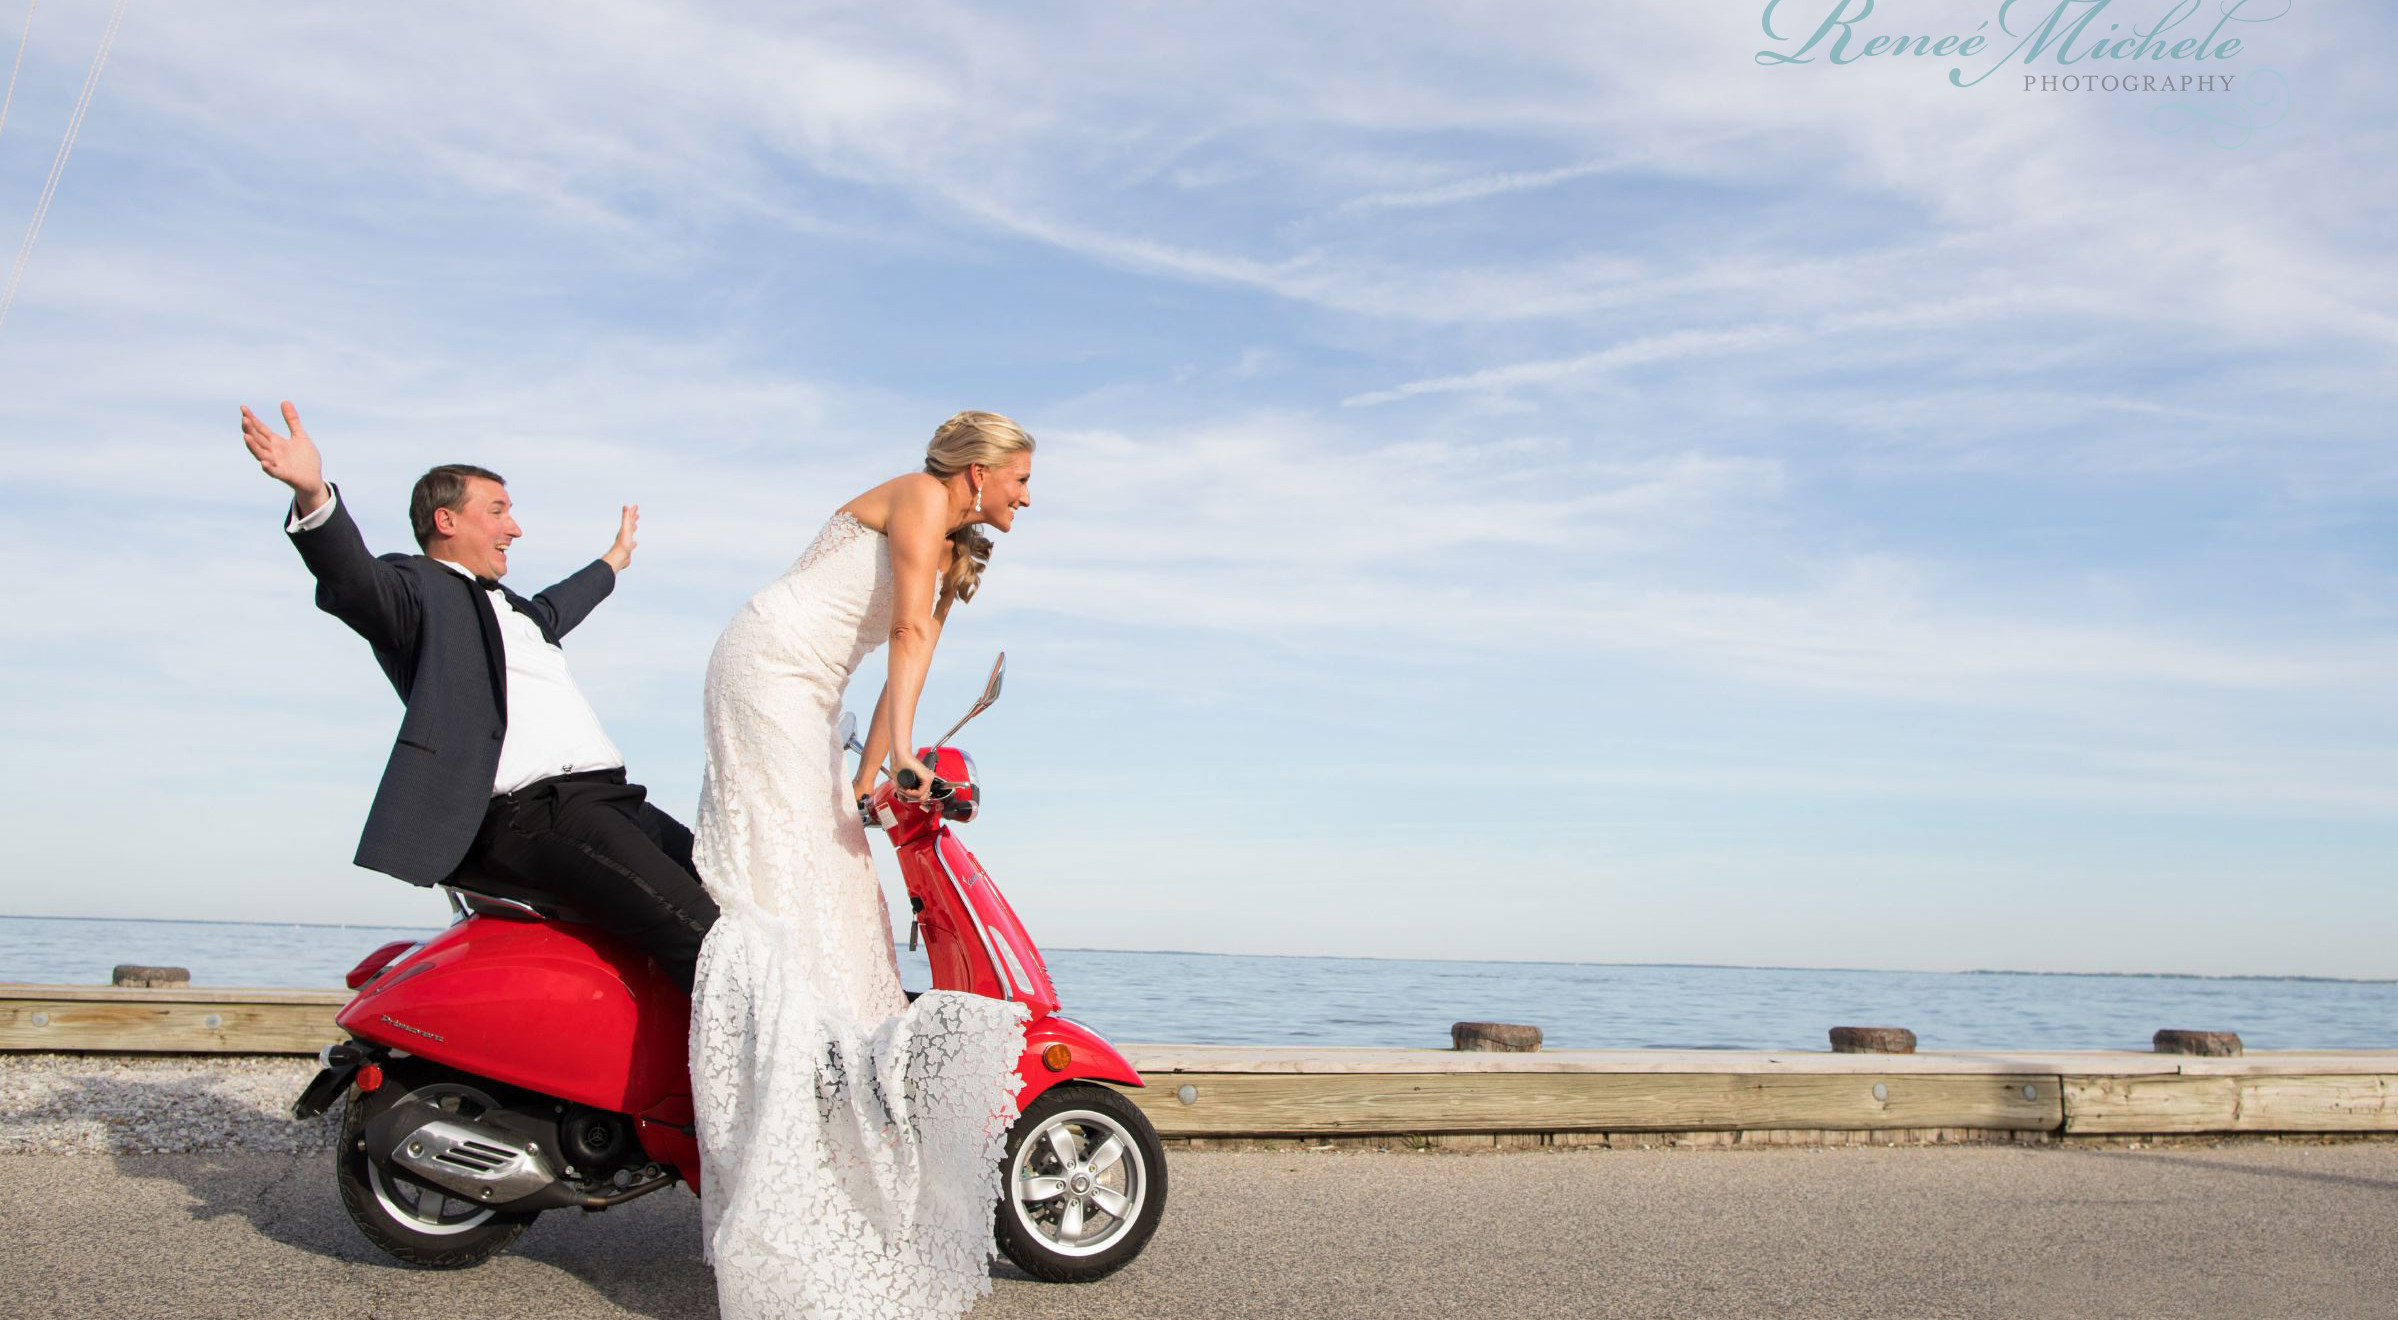 Bride and groom riding a red scooter